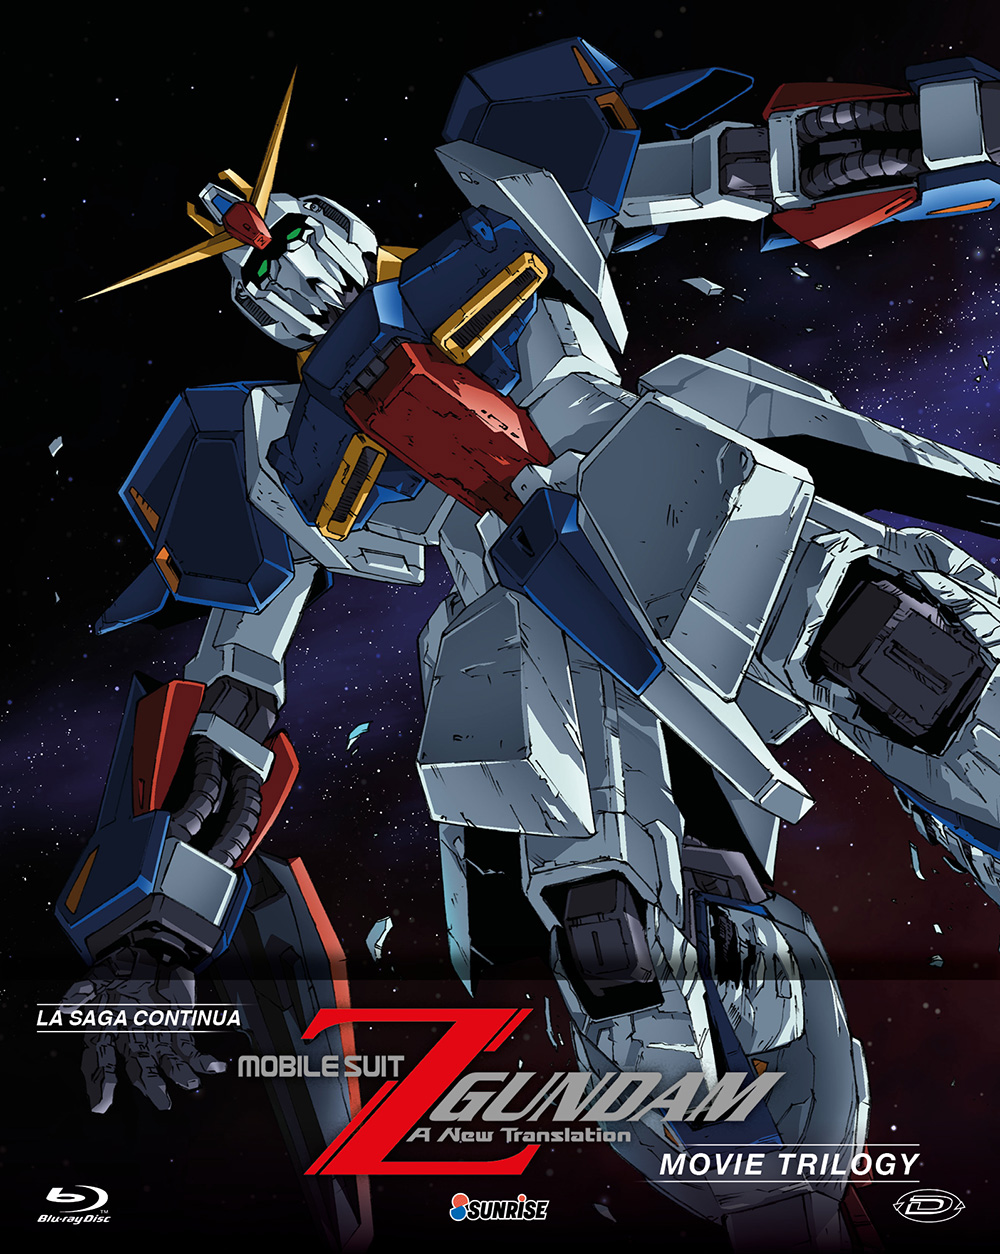 COF.MOBILE SUIT Z GUNDAM - THE MOVIES COLLECTION (3 BLU-RAY)